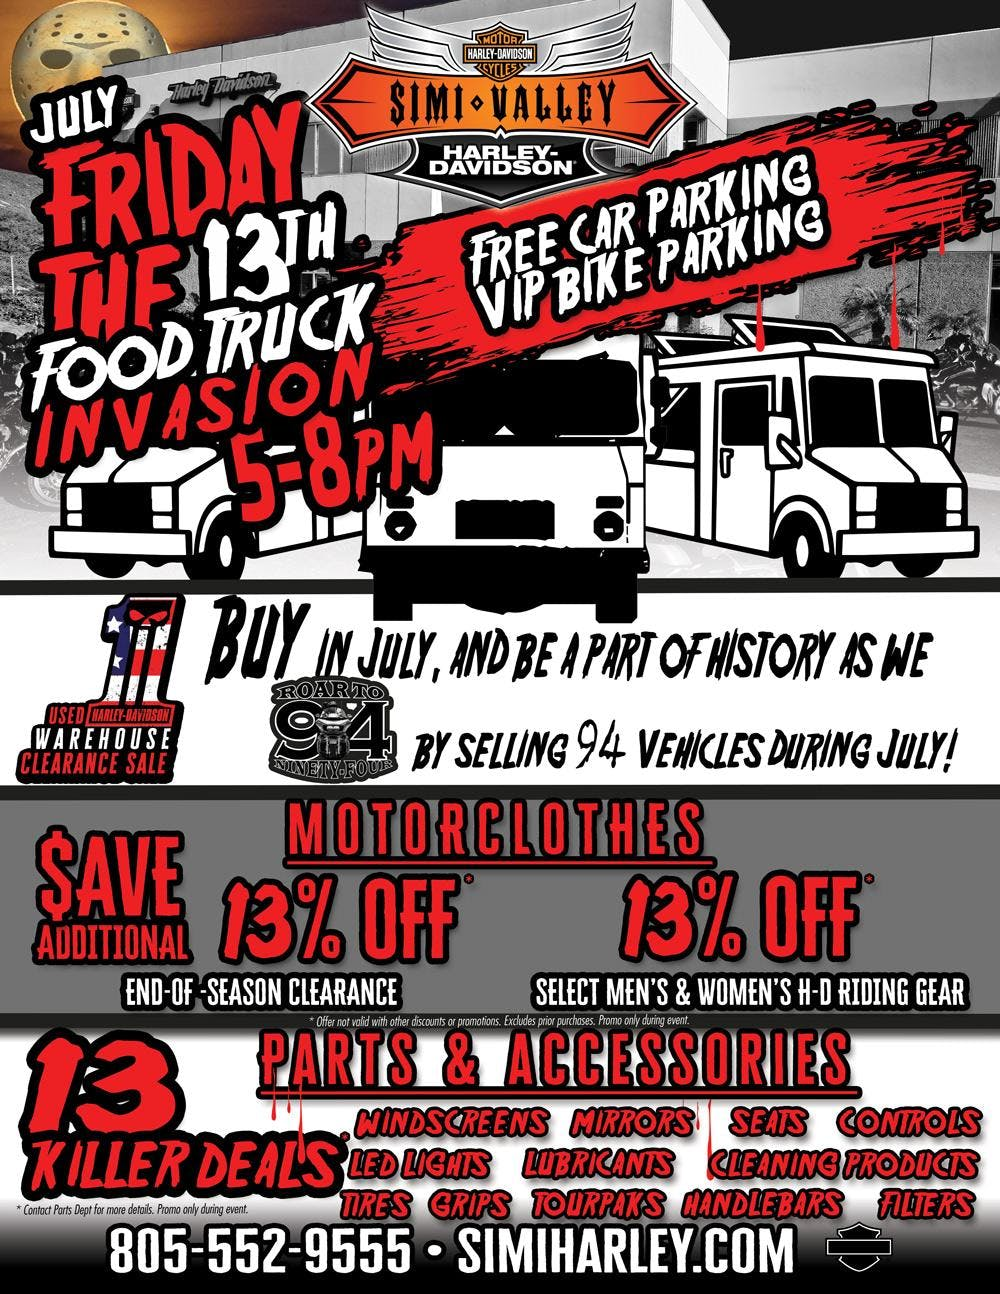 simi harley july friday the 13th food truck invasion at simi valley